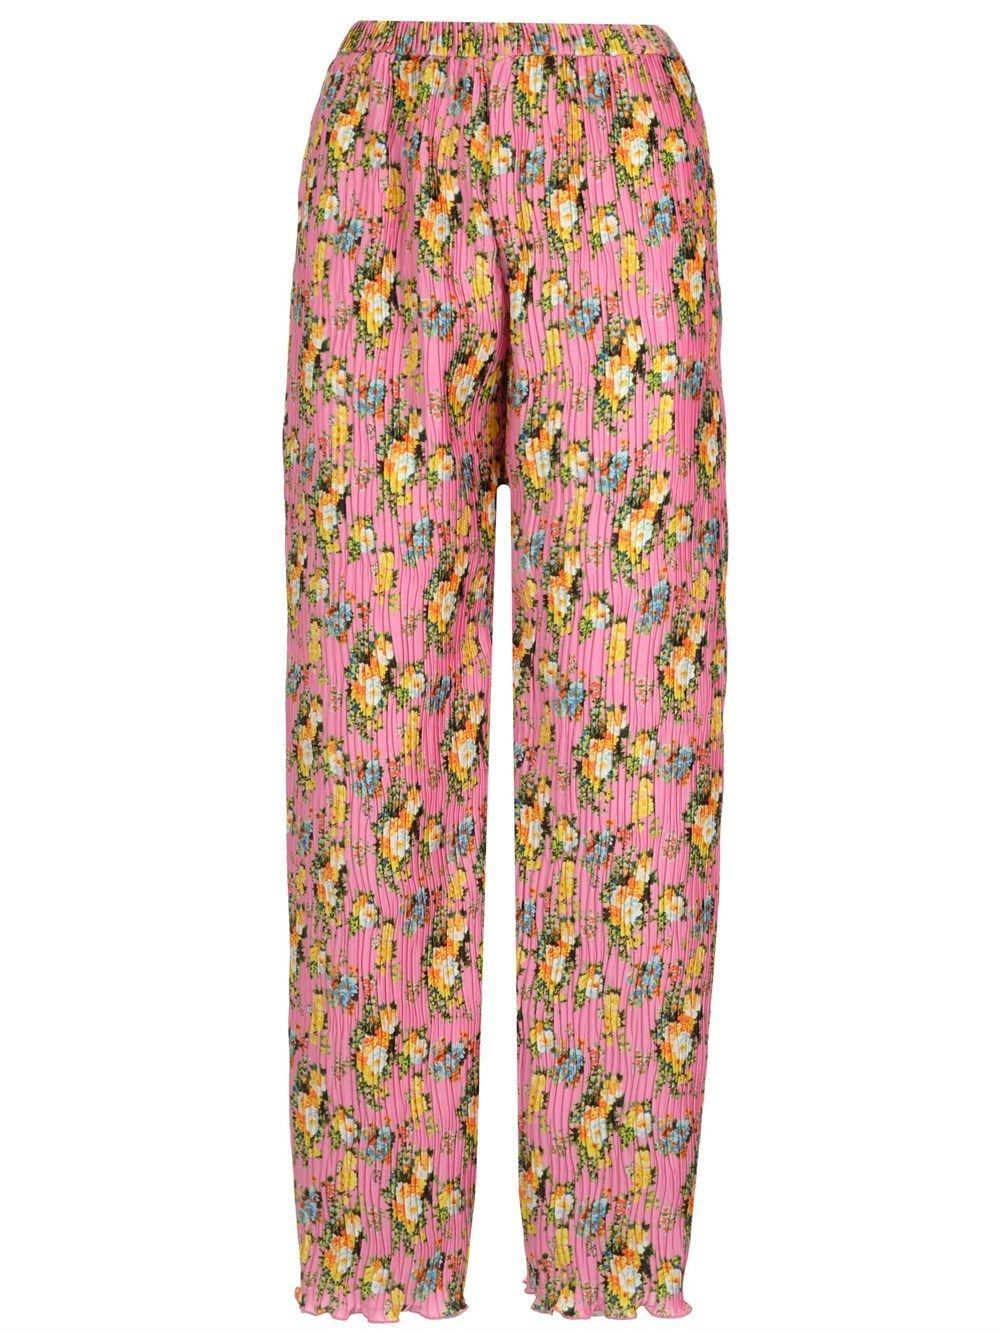 Msgm MSGM WOMEN'S PINK OTHER MATERIALS PANTS